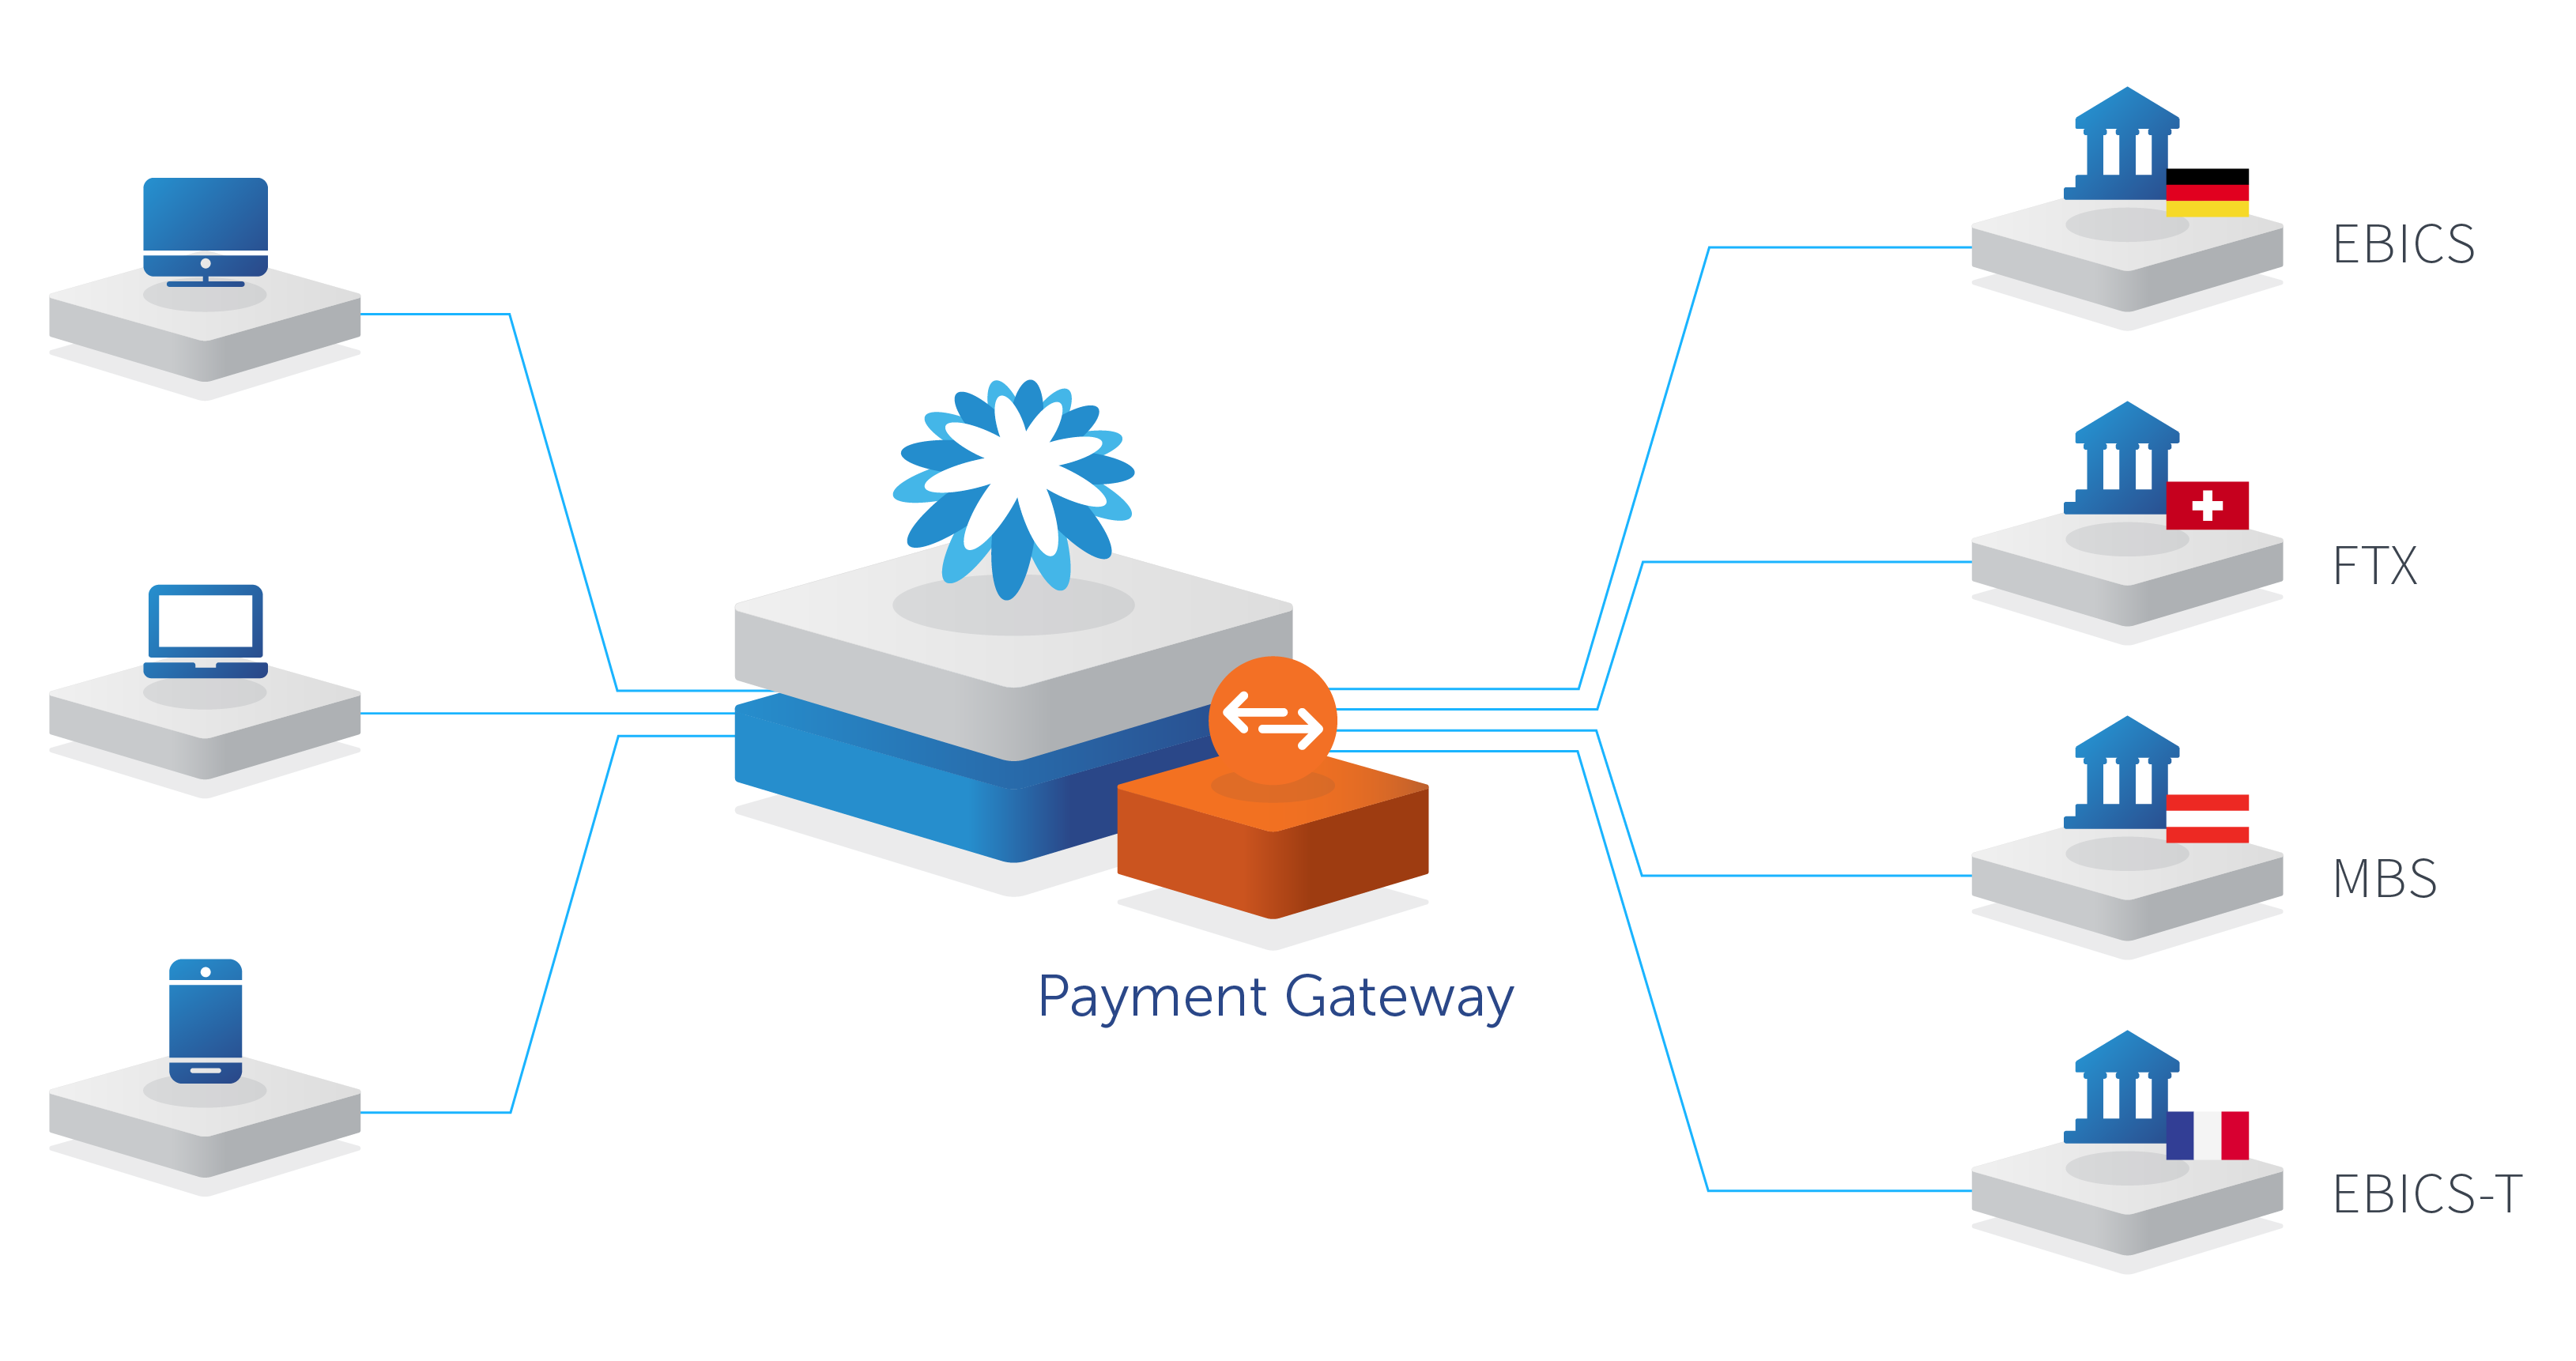 Payments Livecicle overview